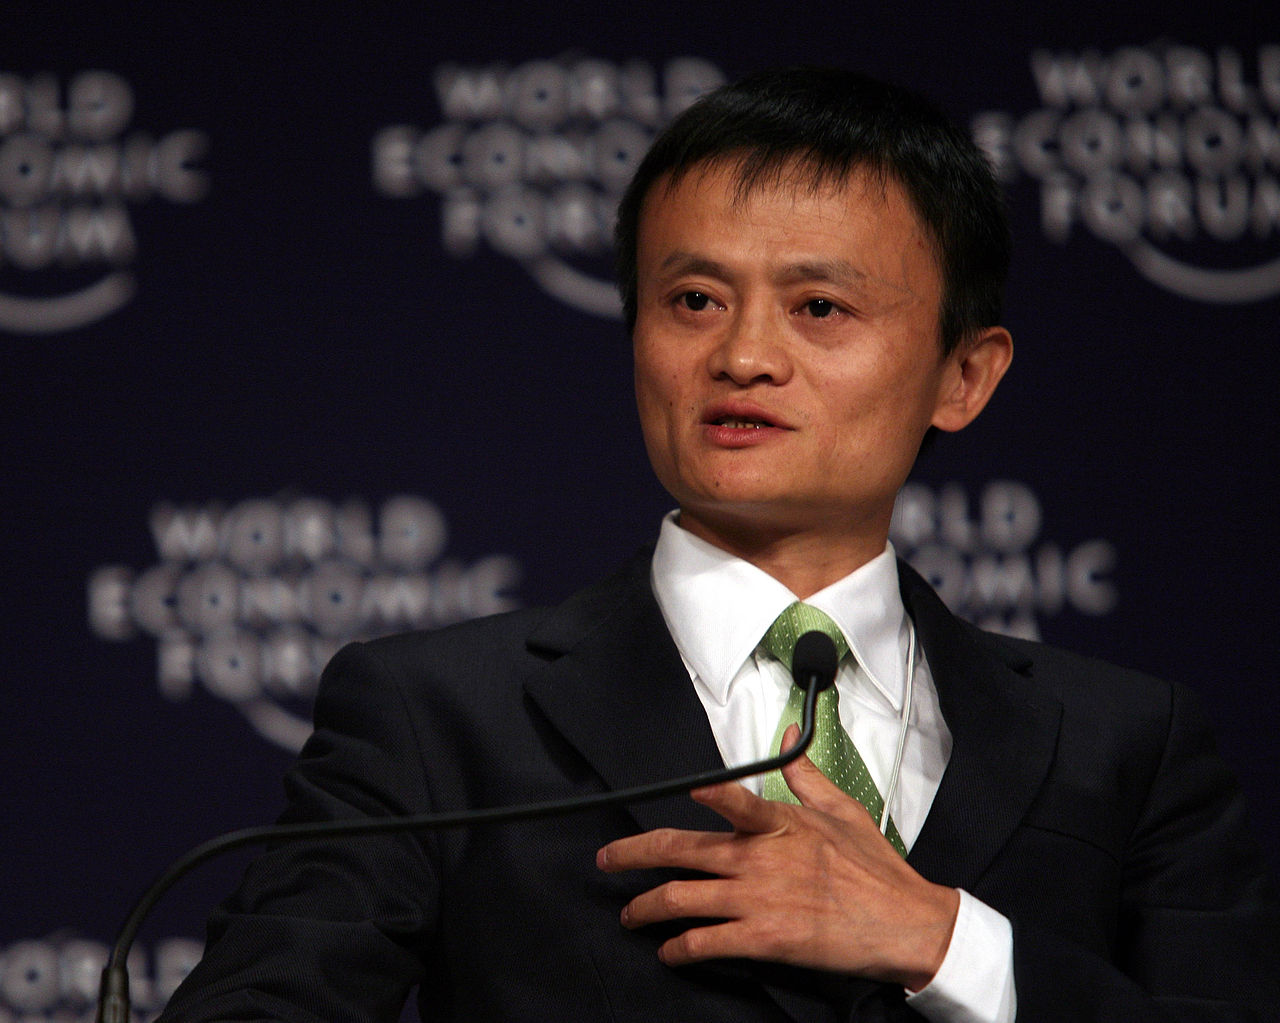 Established in 1999 by Jack Ma, Alibaba accounts for around 80 percent of the Chinese e-commerce market. (image: wikimedia)